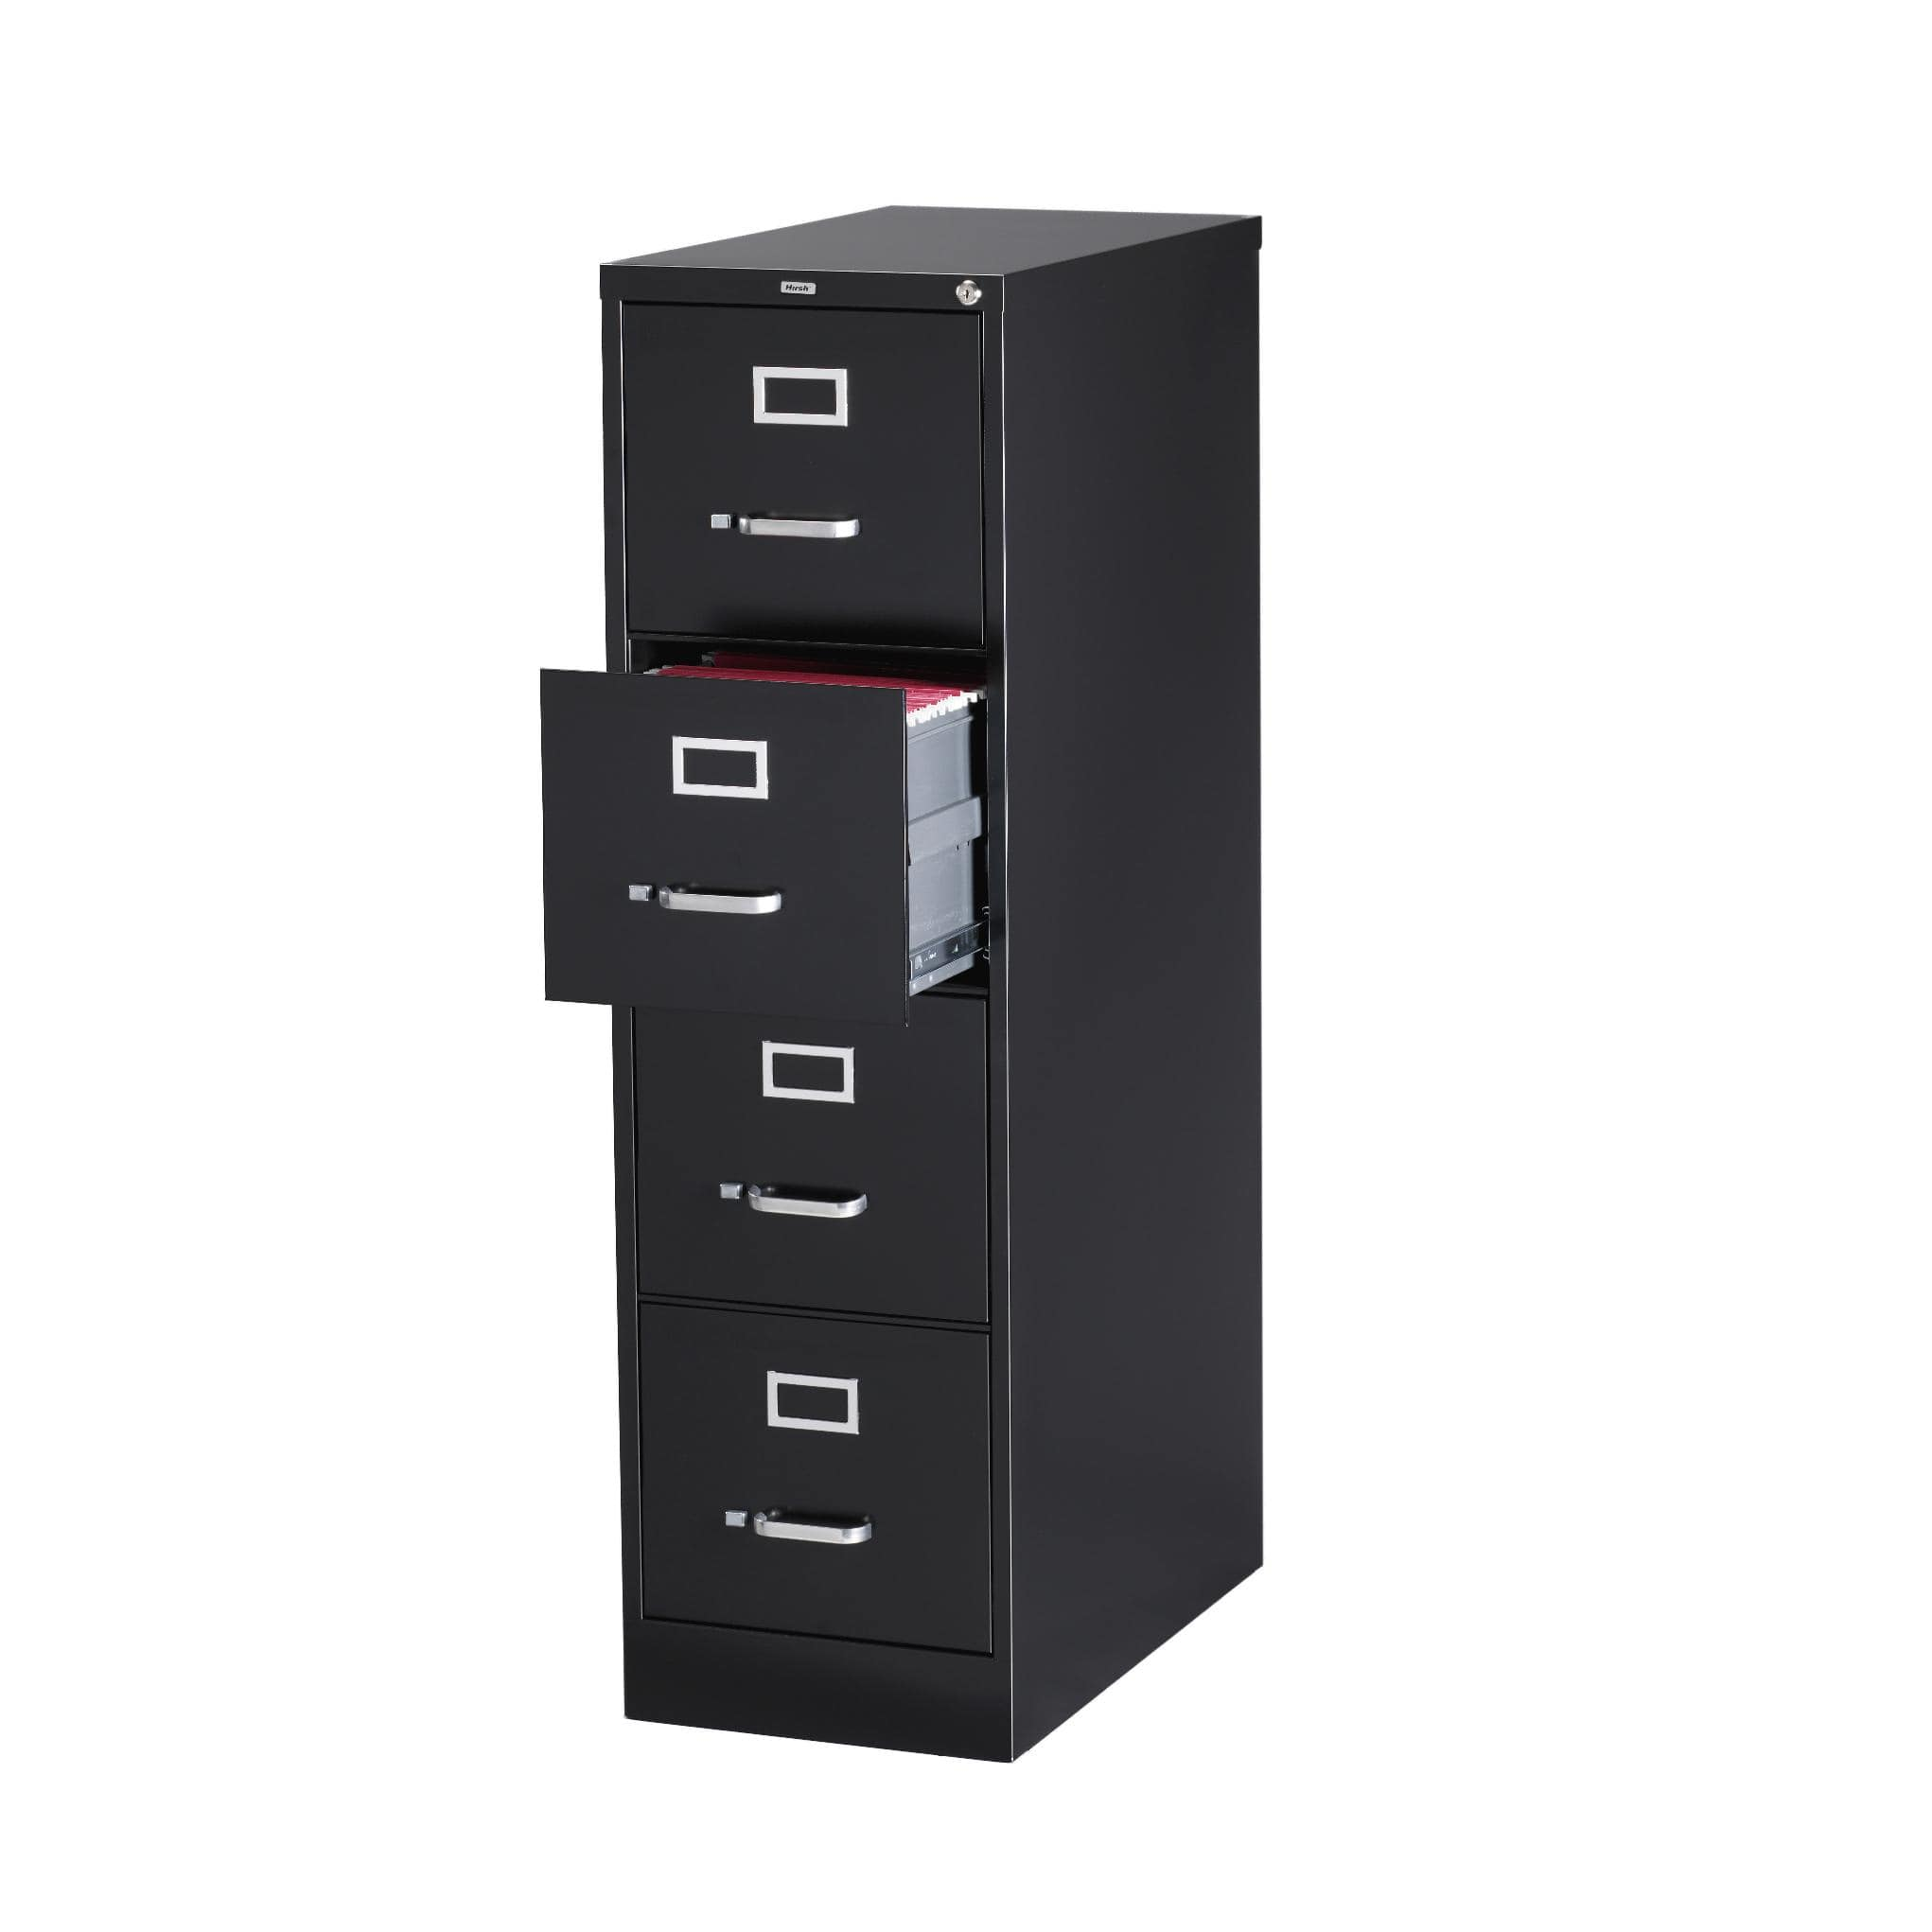 3000 Series 26.5 Inch Deep 4 Drawer, Letter Size Vertical File Cabinet,  Putty   Walmart.com